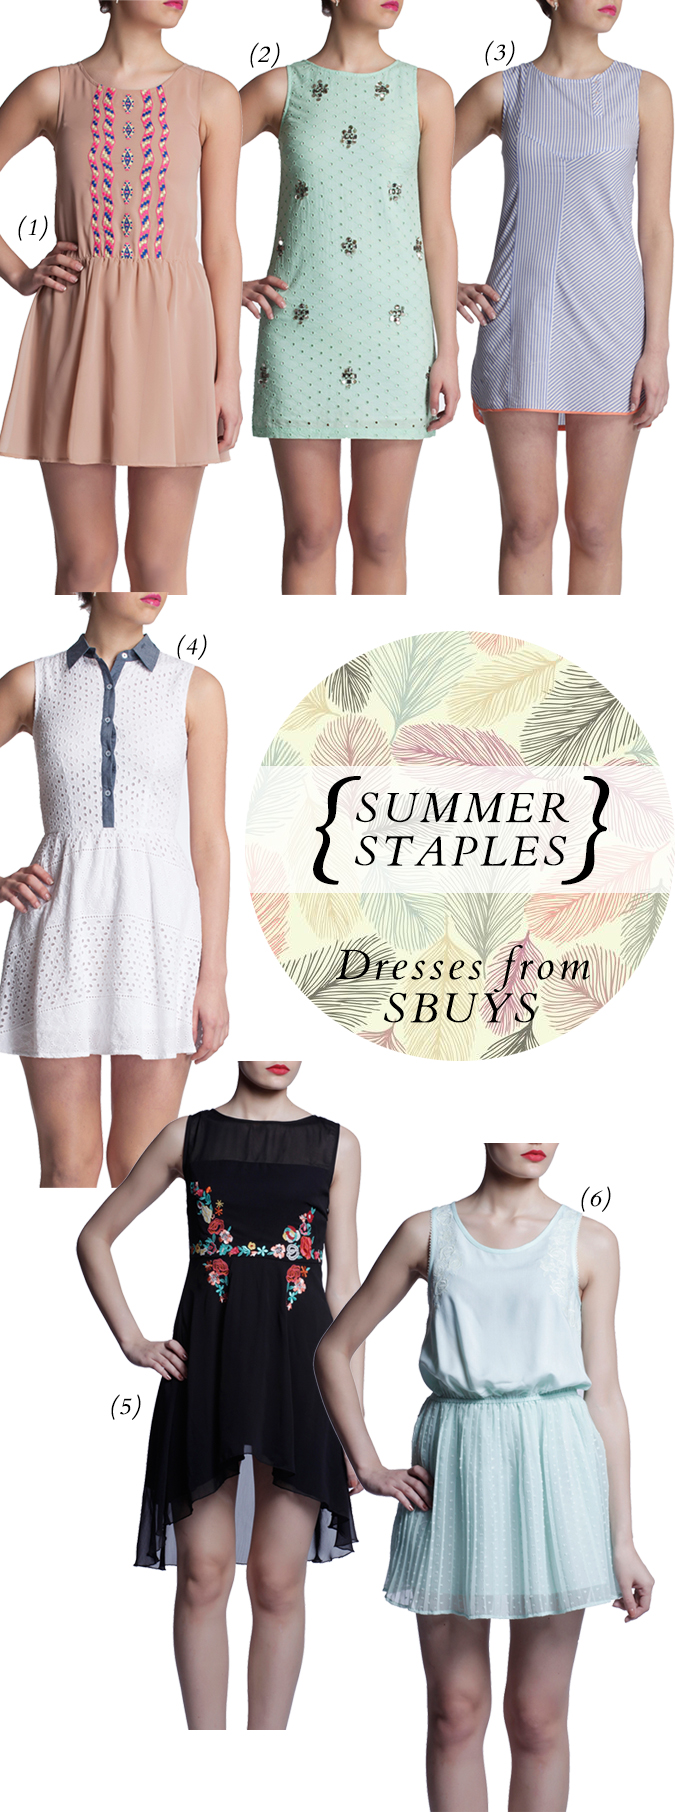 Summer Staples | Dresses | SBUYS